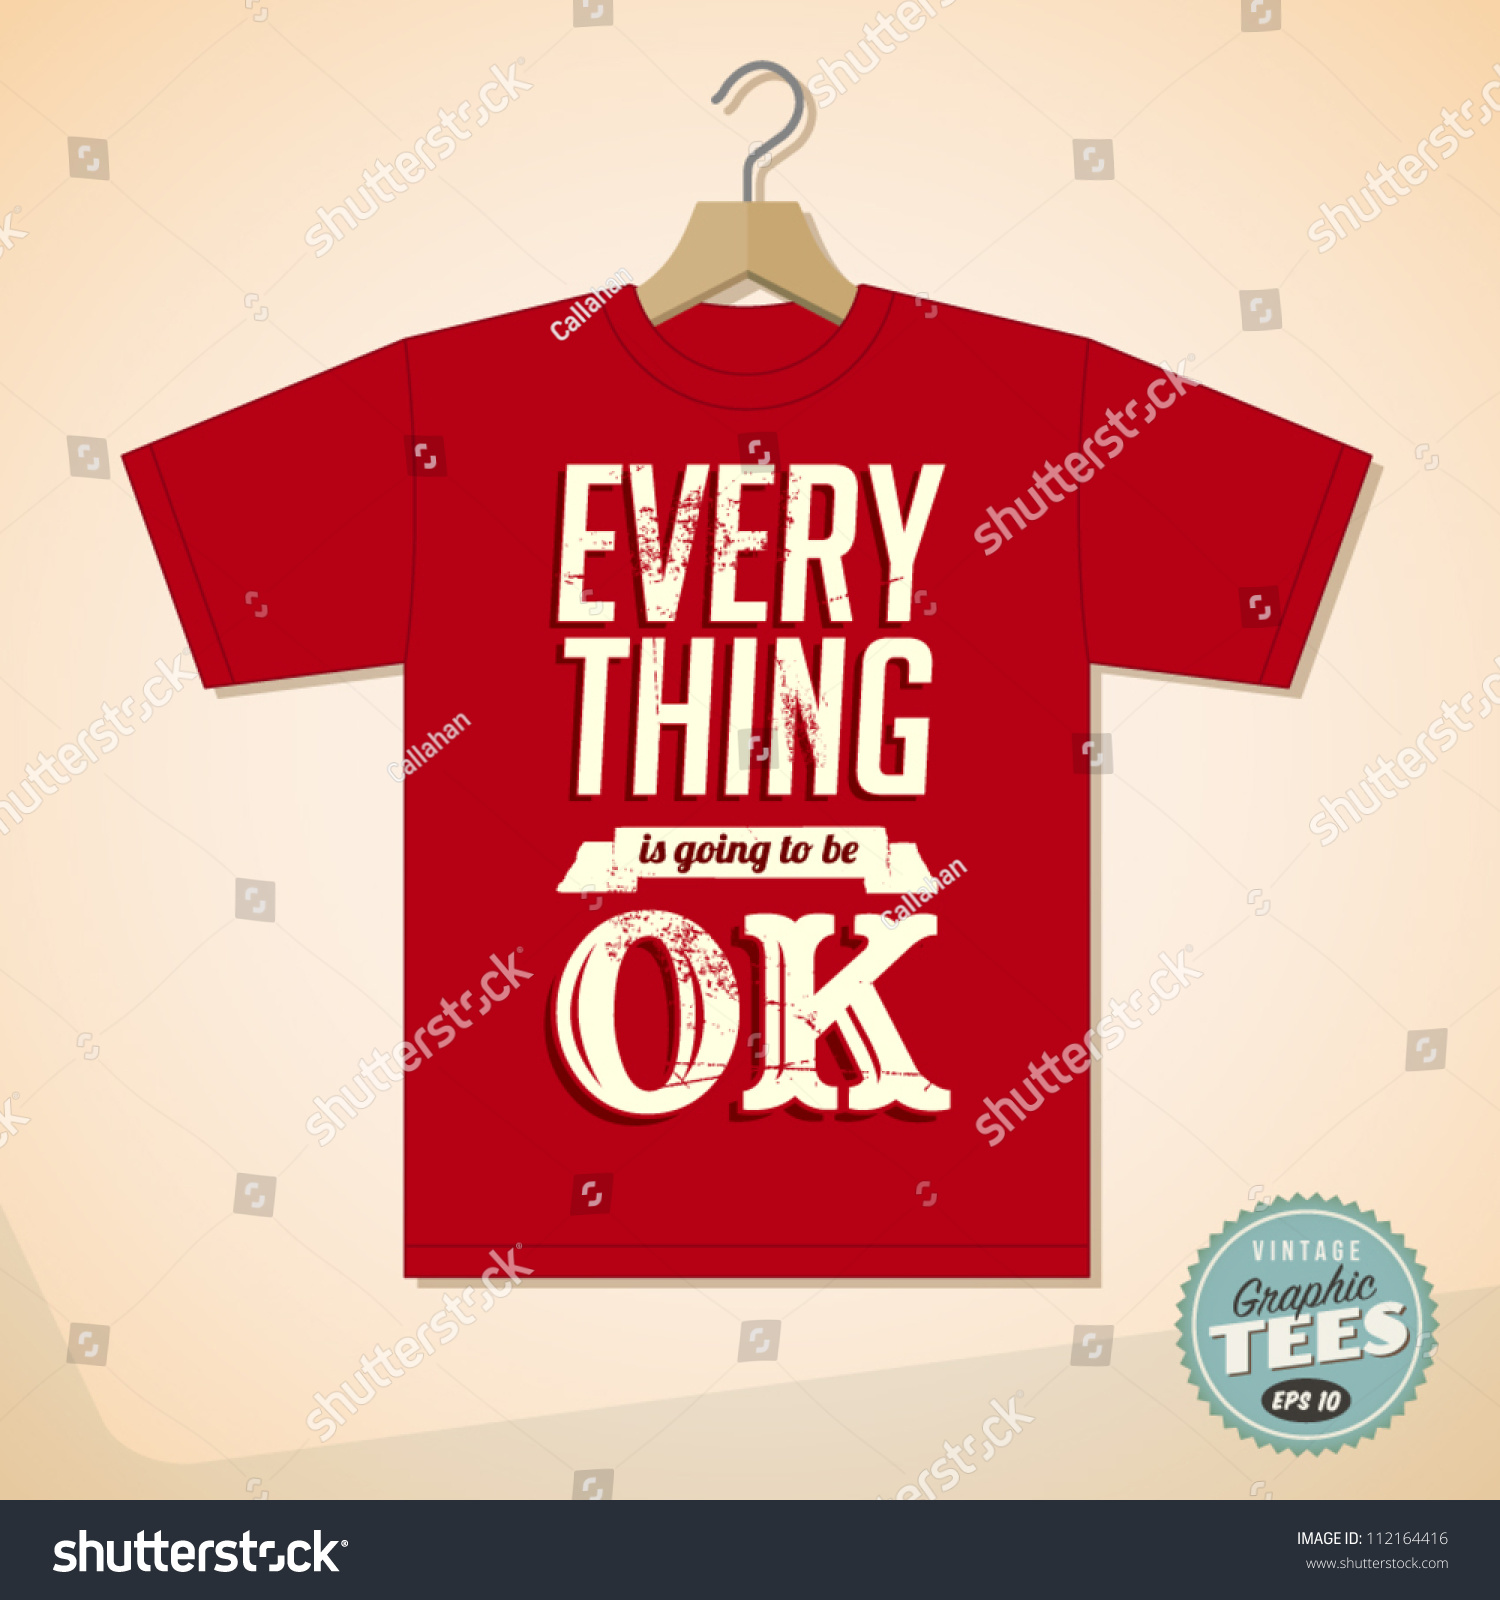 Vintage Graphic T Shirt Design Everything Is Going To Be